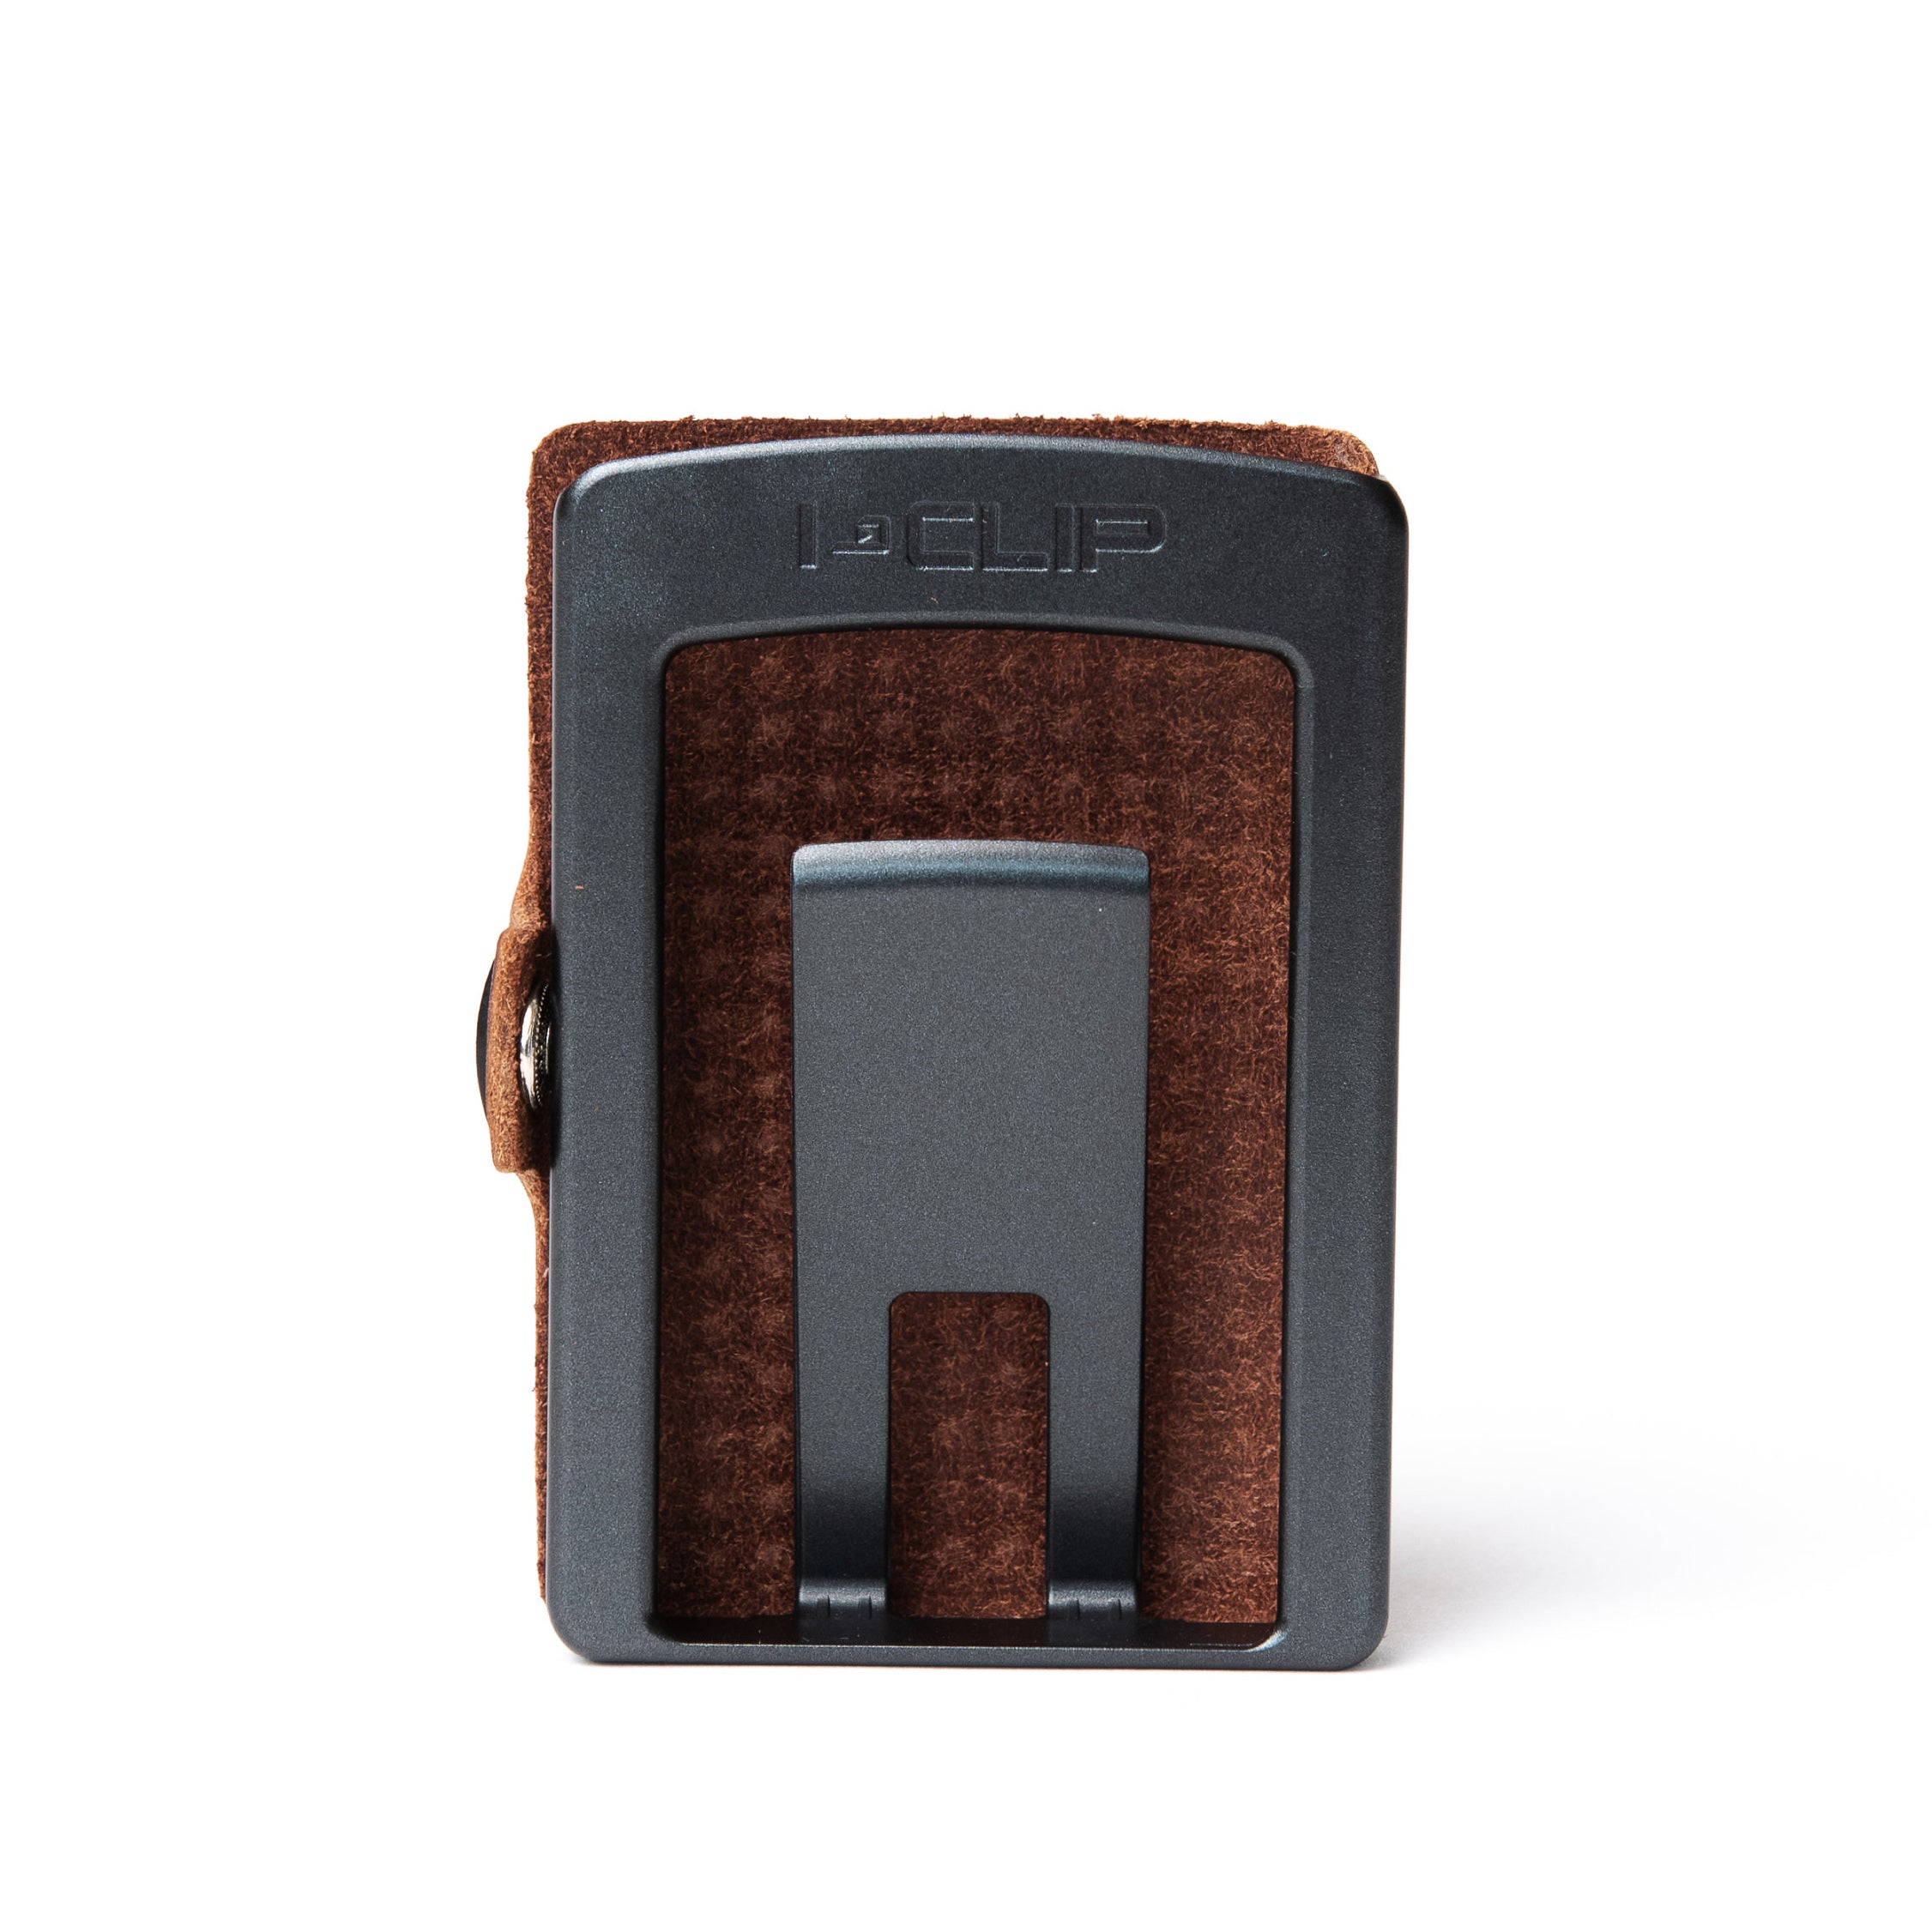 AdvantageR Leather - Oak / Gunmetal Black Frame - I-CLIP